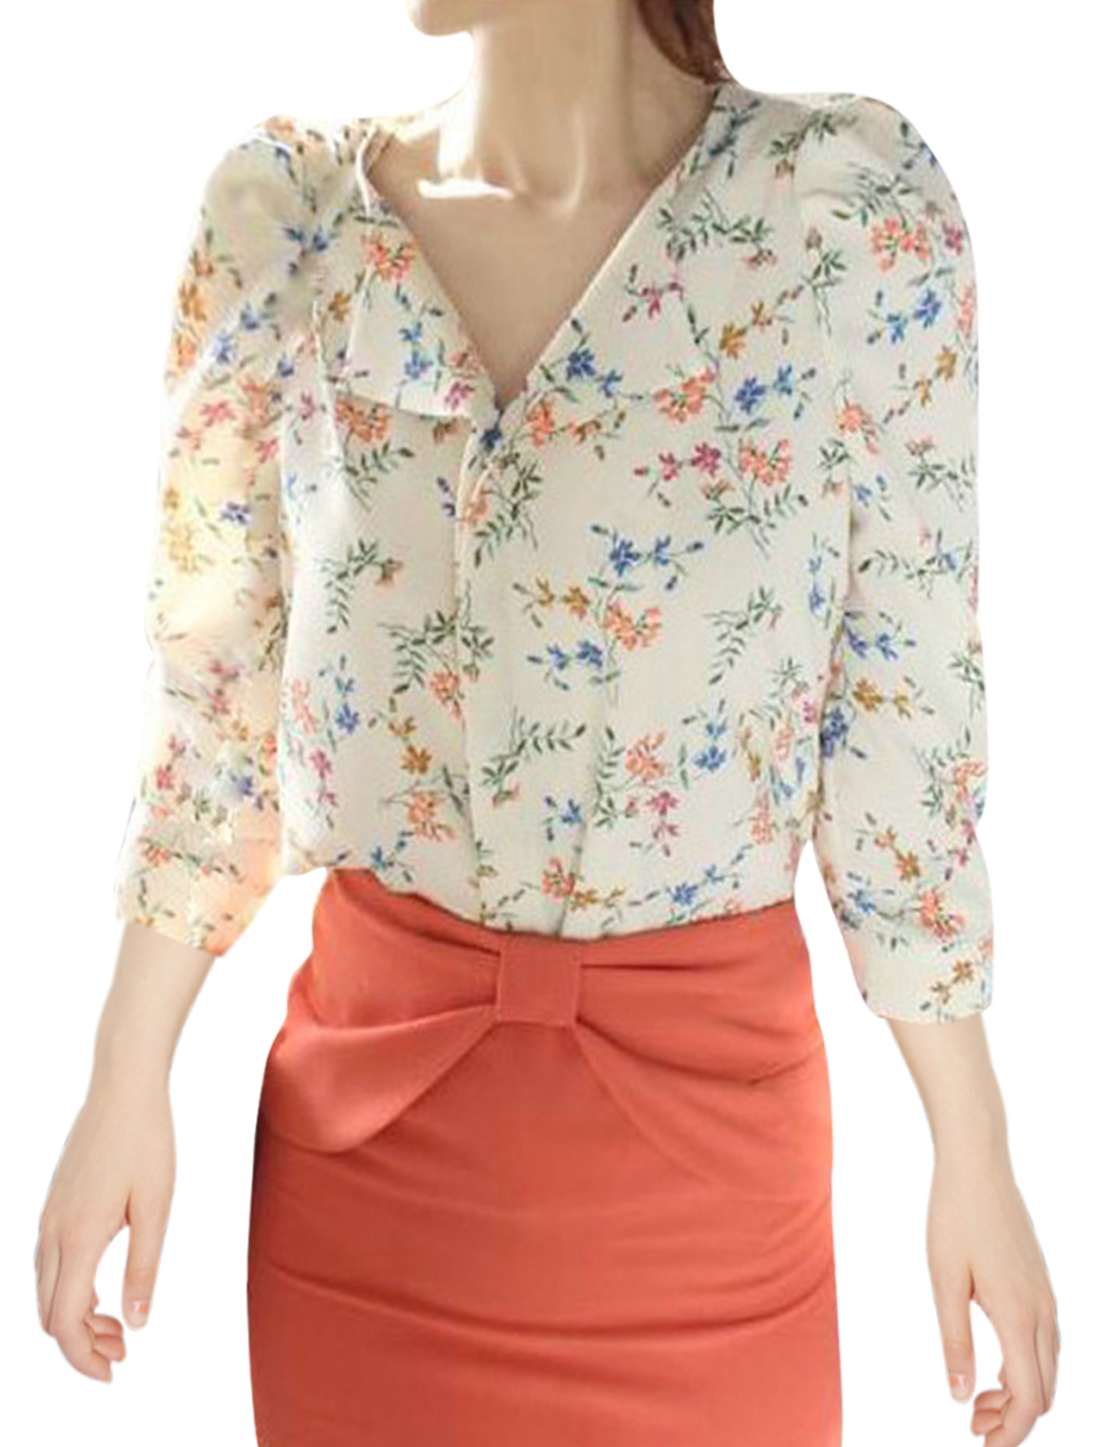 Ladies Floral Print Half Sleeve Style Multicolor Summer Blouse S Beige